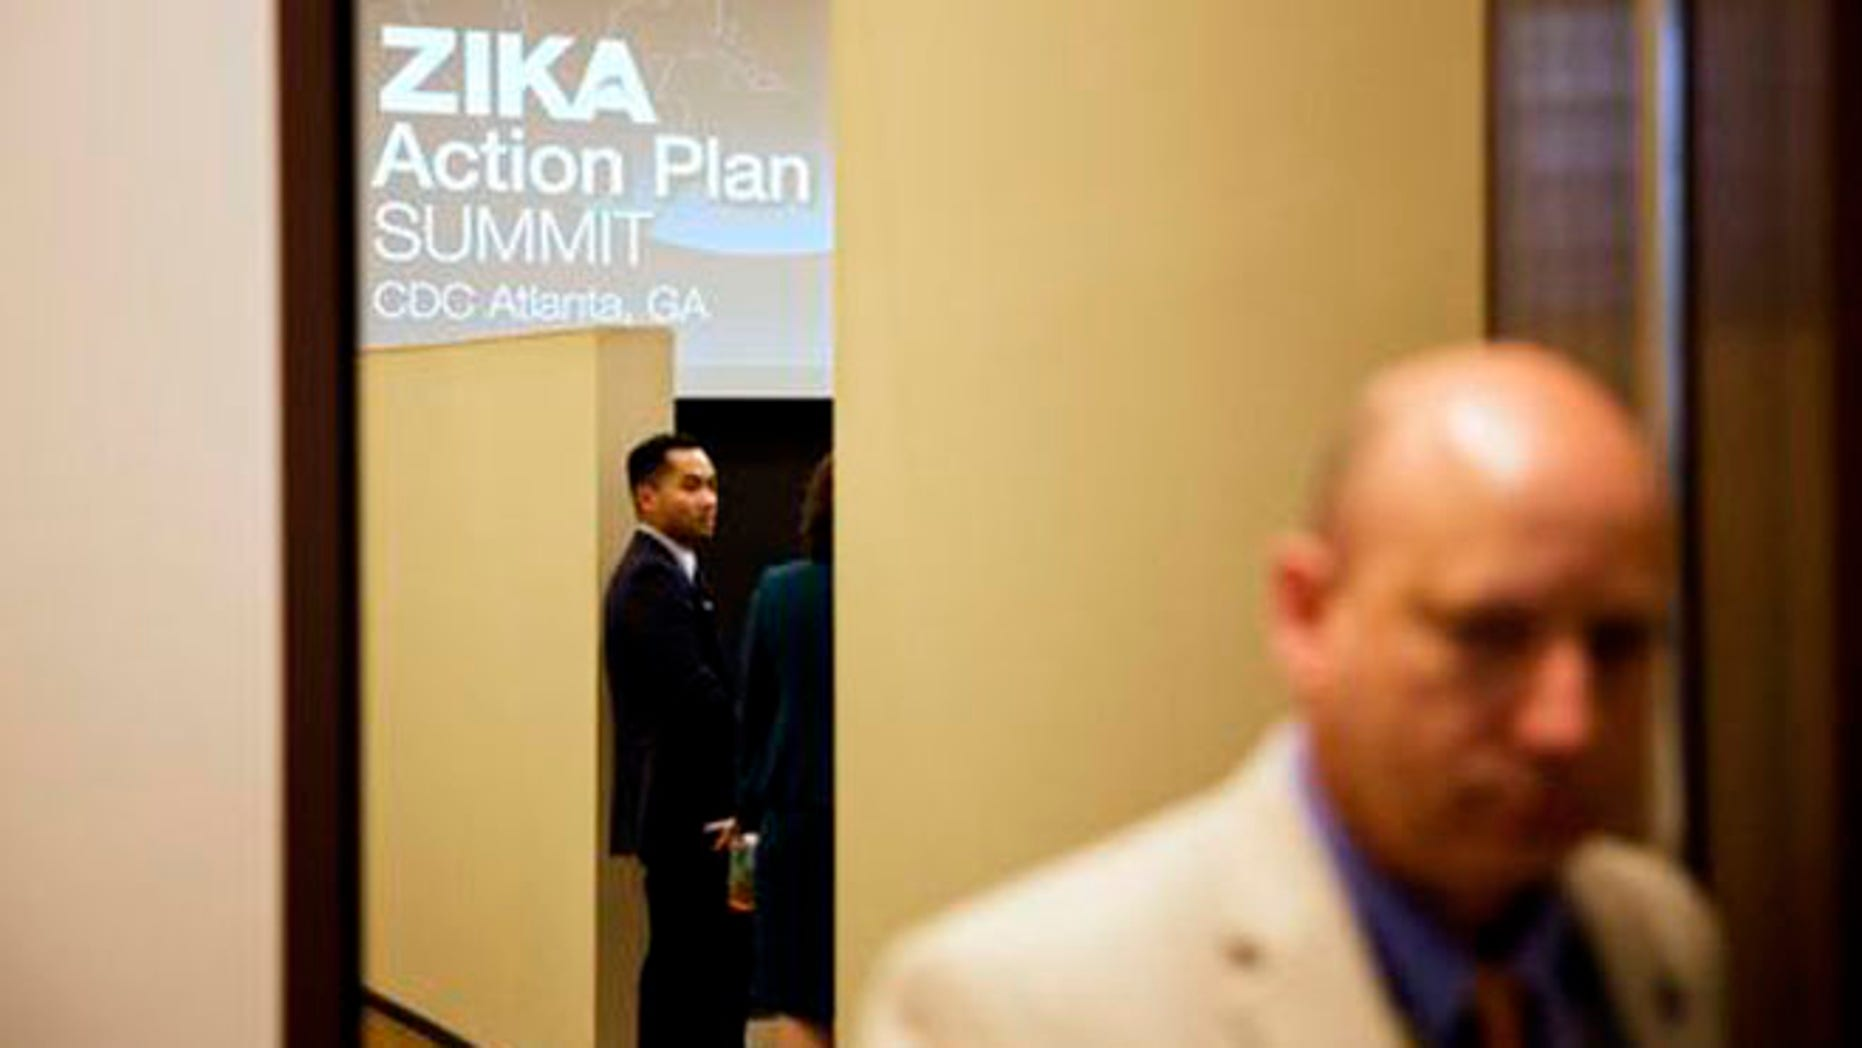 A graphic is displayed on a screen as attendees wait for a seminar to begin at a one-day Zika summit at the Centers for Disease Control and Prevention Friday, April 1, 2016, in Atlanta. The government is urging health officials from around the country to prepare for potential outbreaks of the mosquito-borne virus in the U.S. (AP Photo/David Goldman)